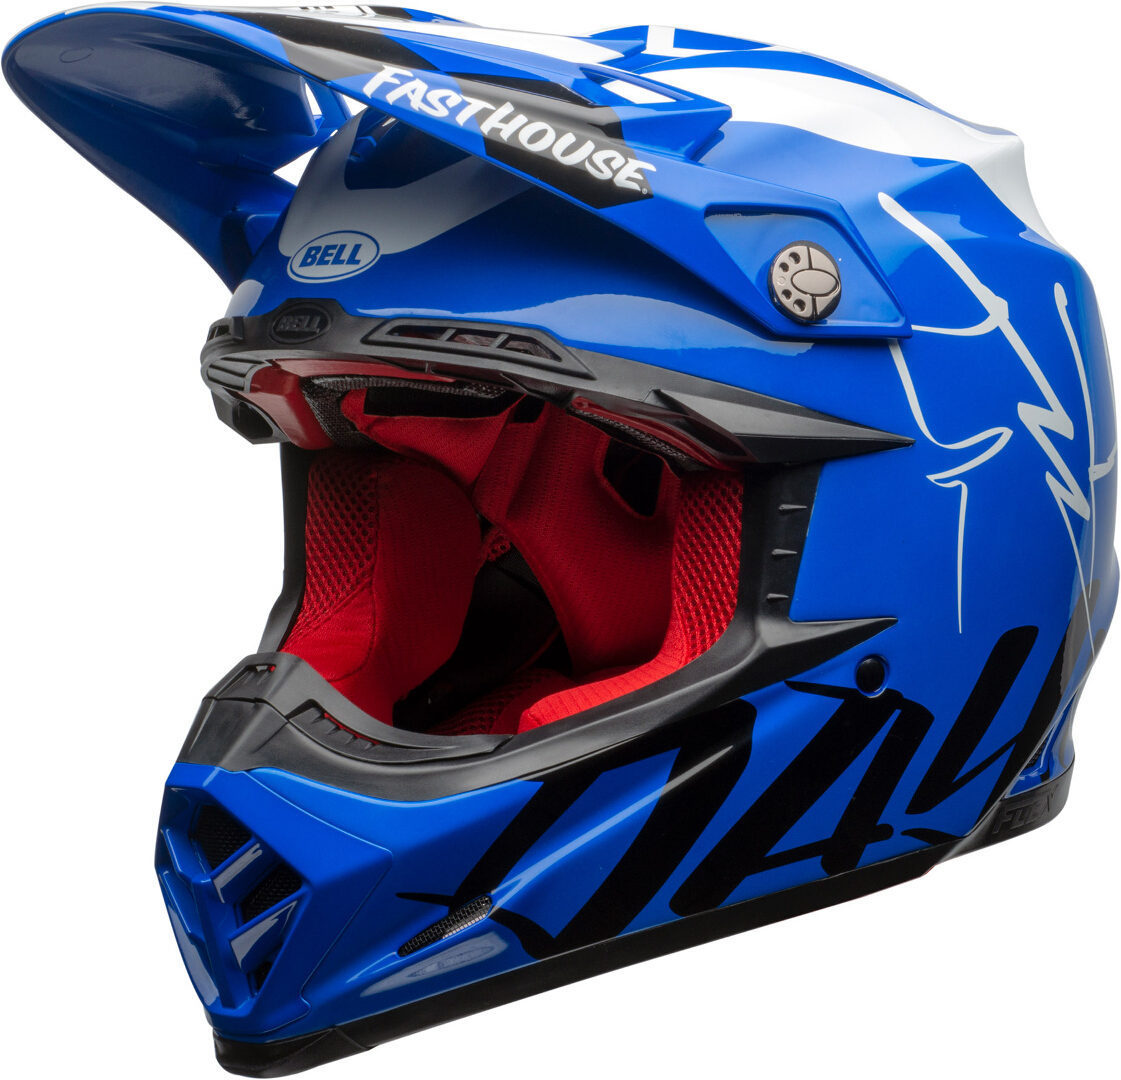 Bell Moto-9 Flex Fasthouse DID20 Motocross Helm, weiss-türkis-blau, Größe S, weiss-türkis-blau, Größe S